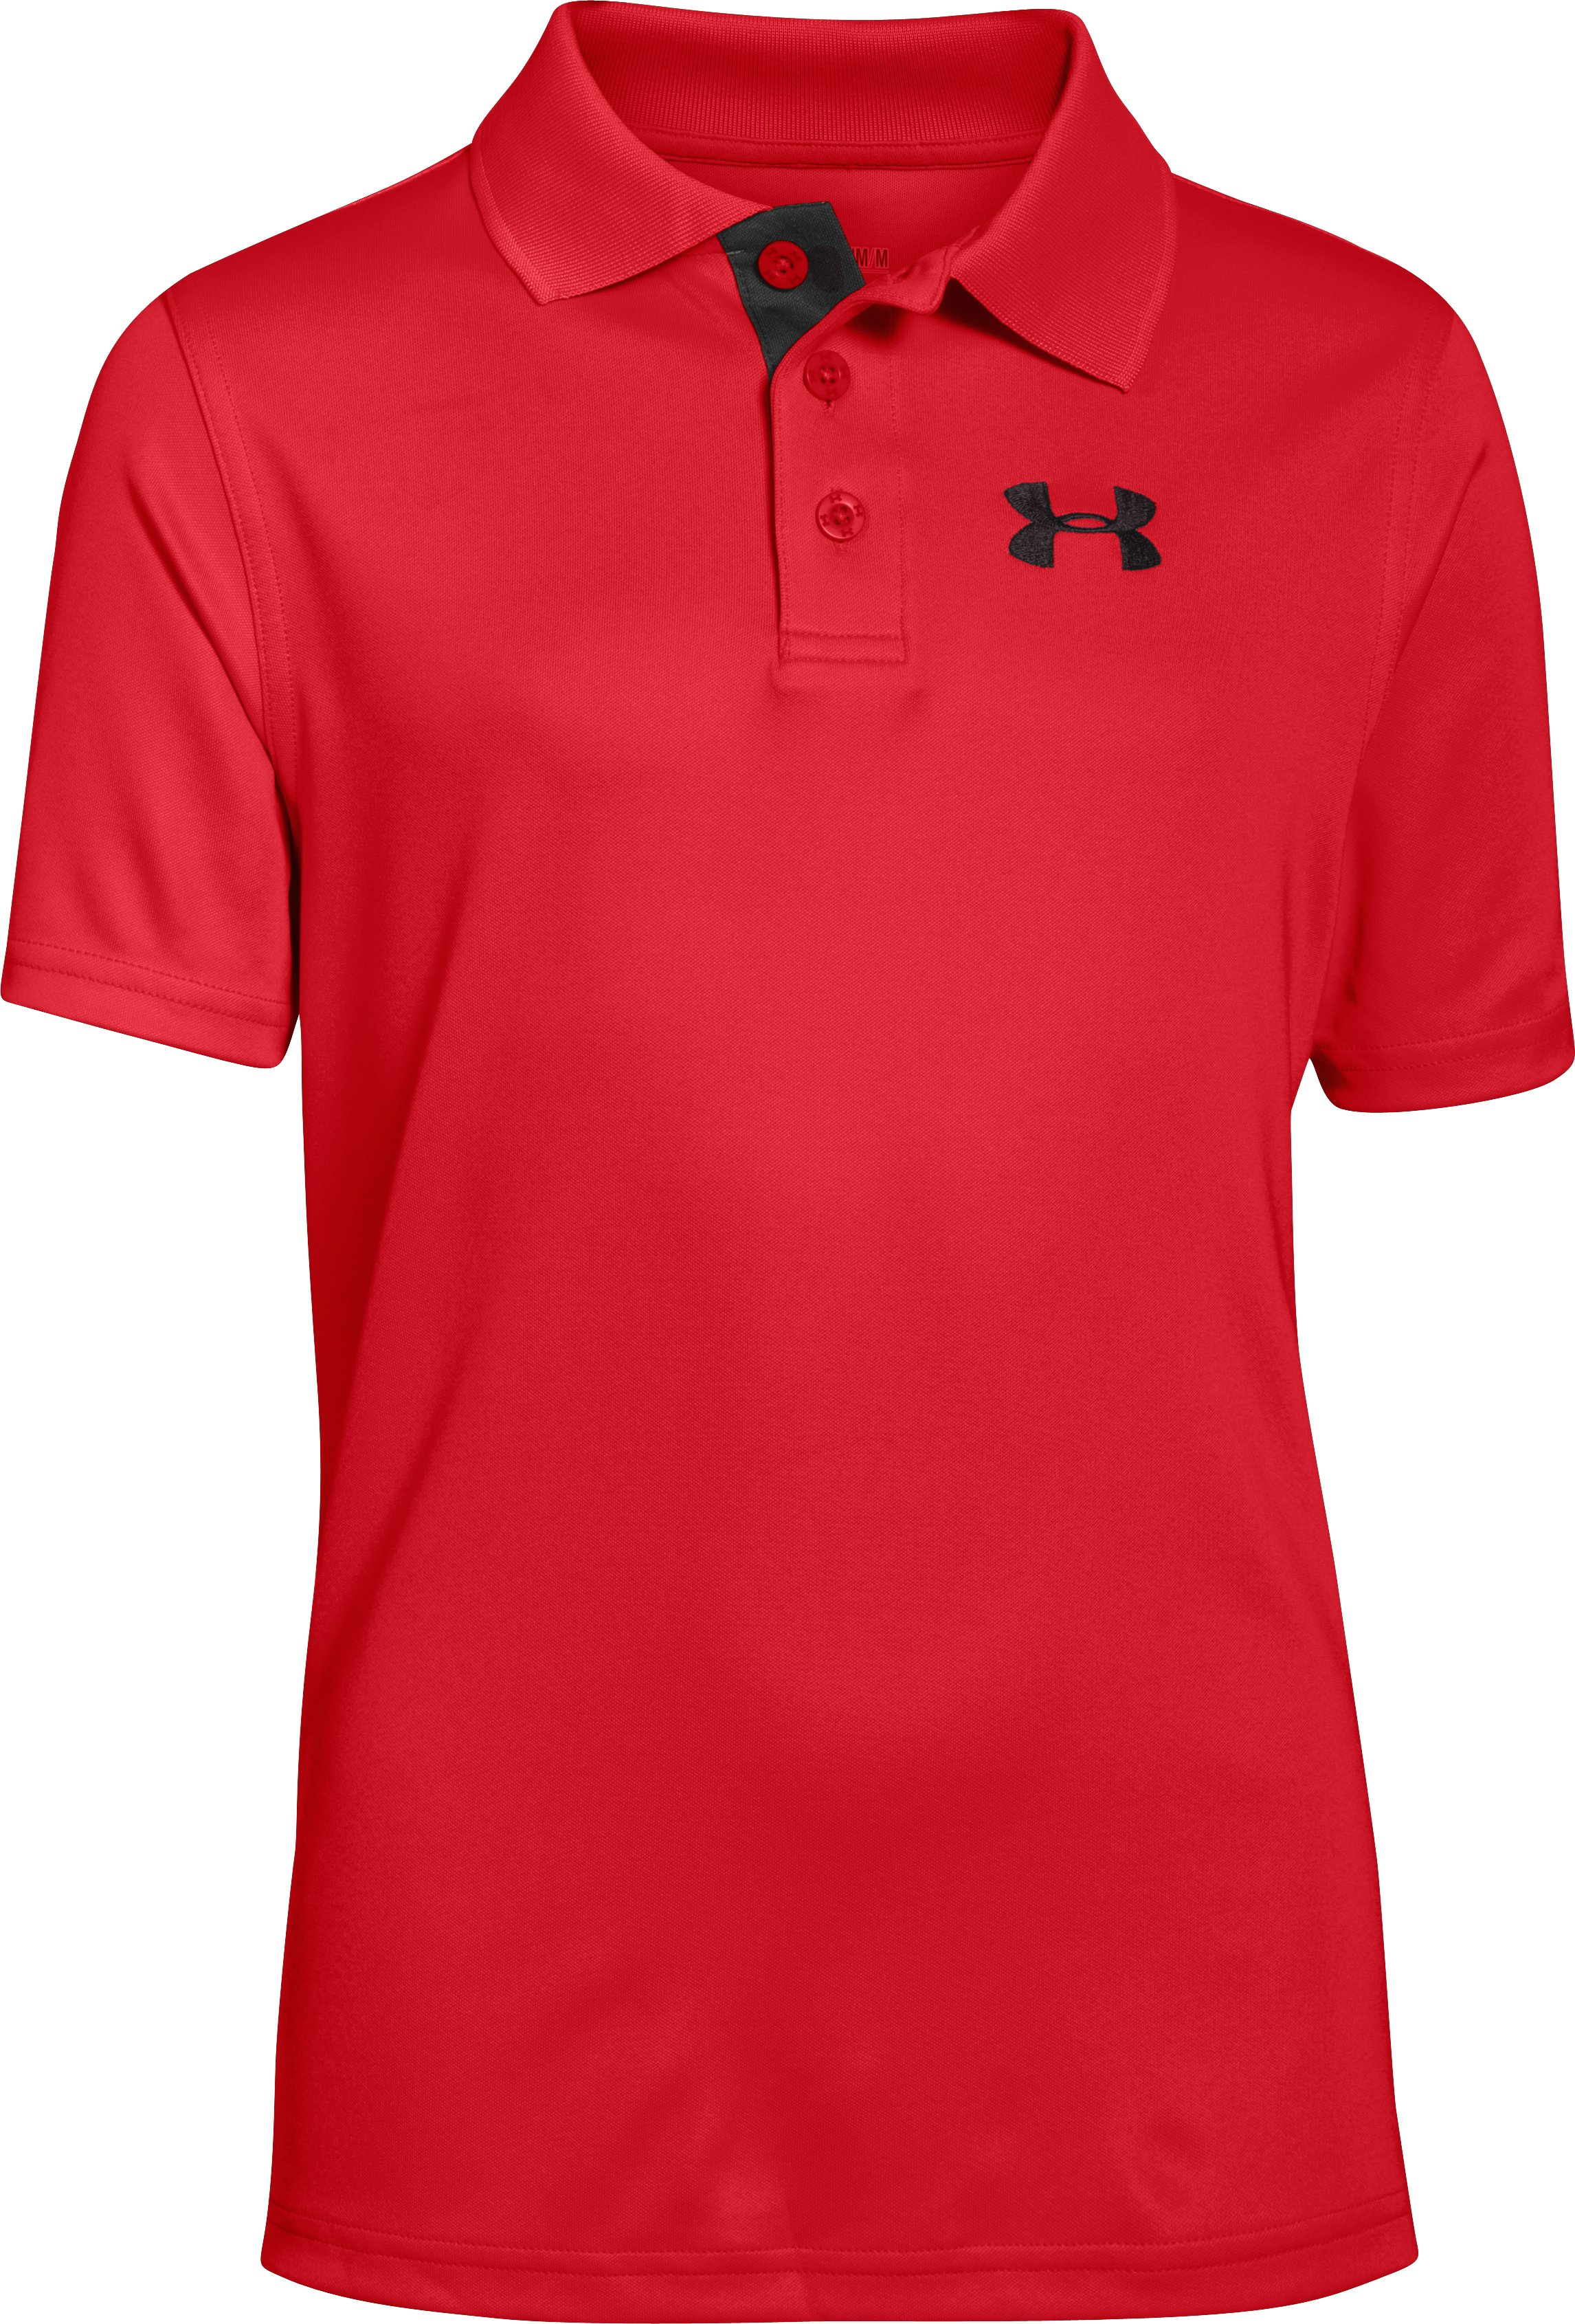 Boys' UA Match Play Polo, RISK RED, zoomed image